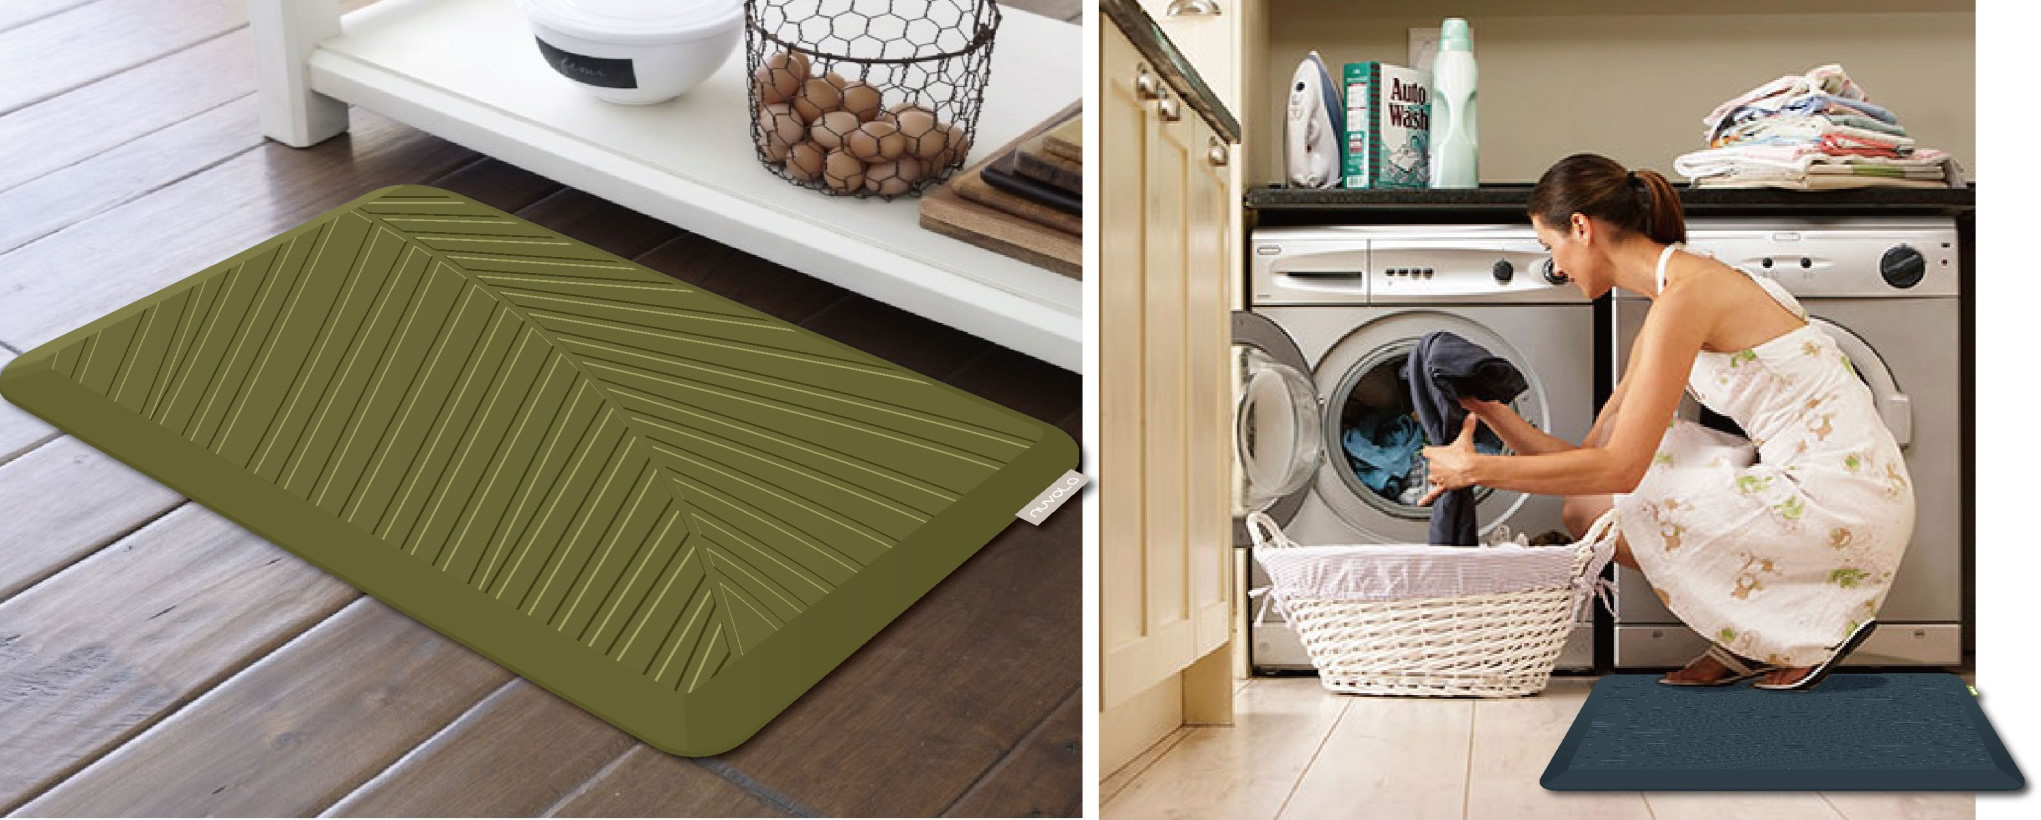 Floor Mat For Kitchen Floor Mat Anti Fatigue Floor Mat Kitchen Floor Matkitchen Mat